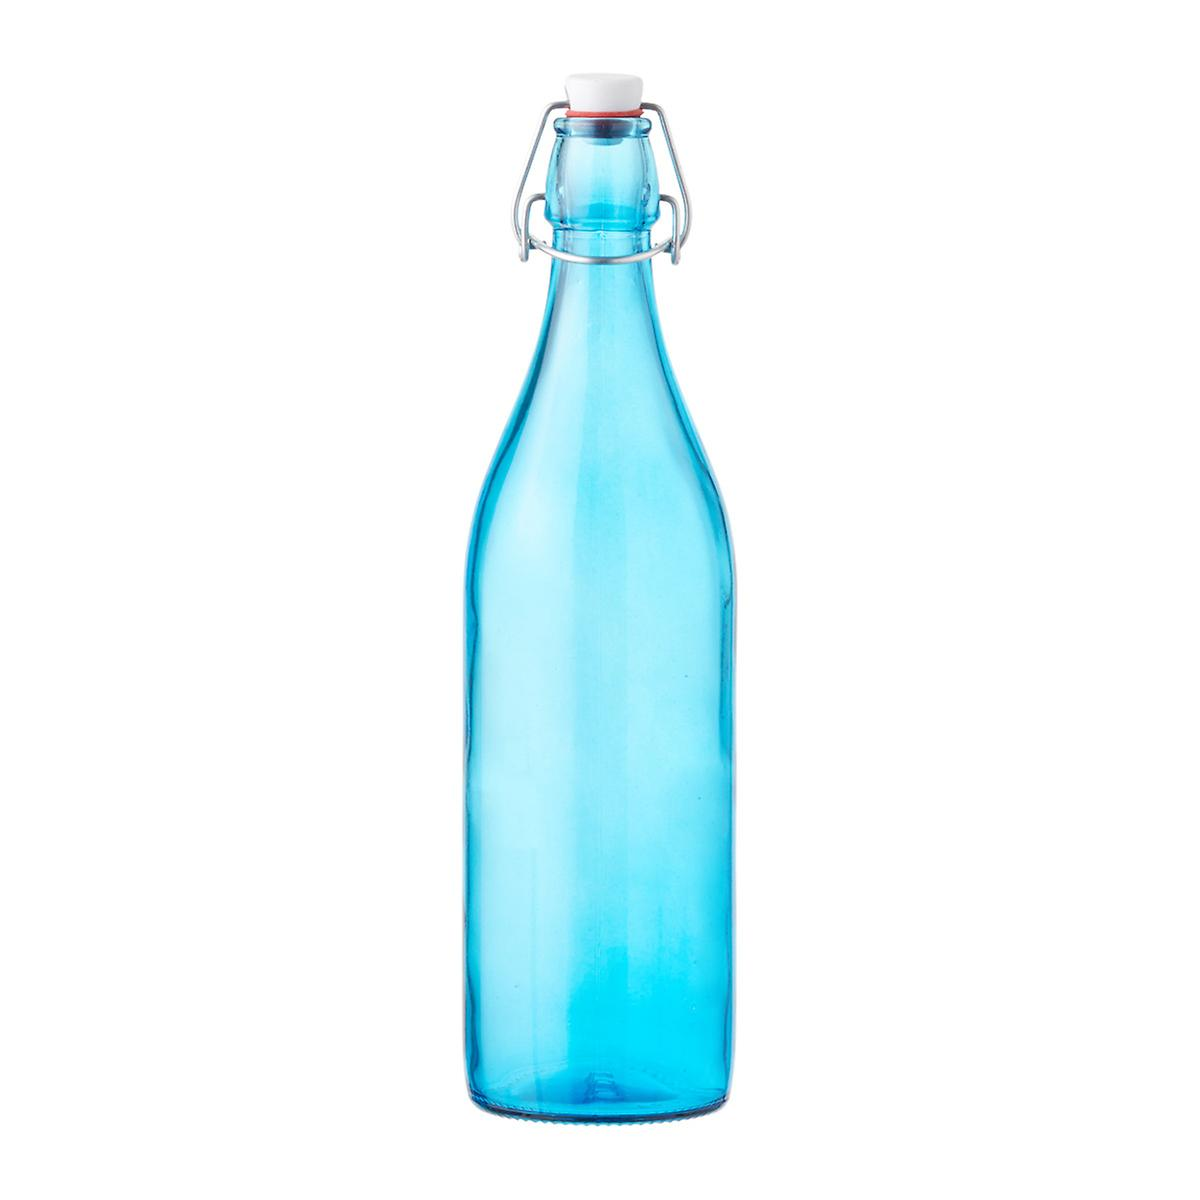 Glass Water Bottles - Giara Glass Water Bottle | The Container Store